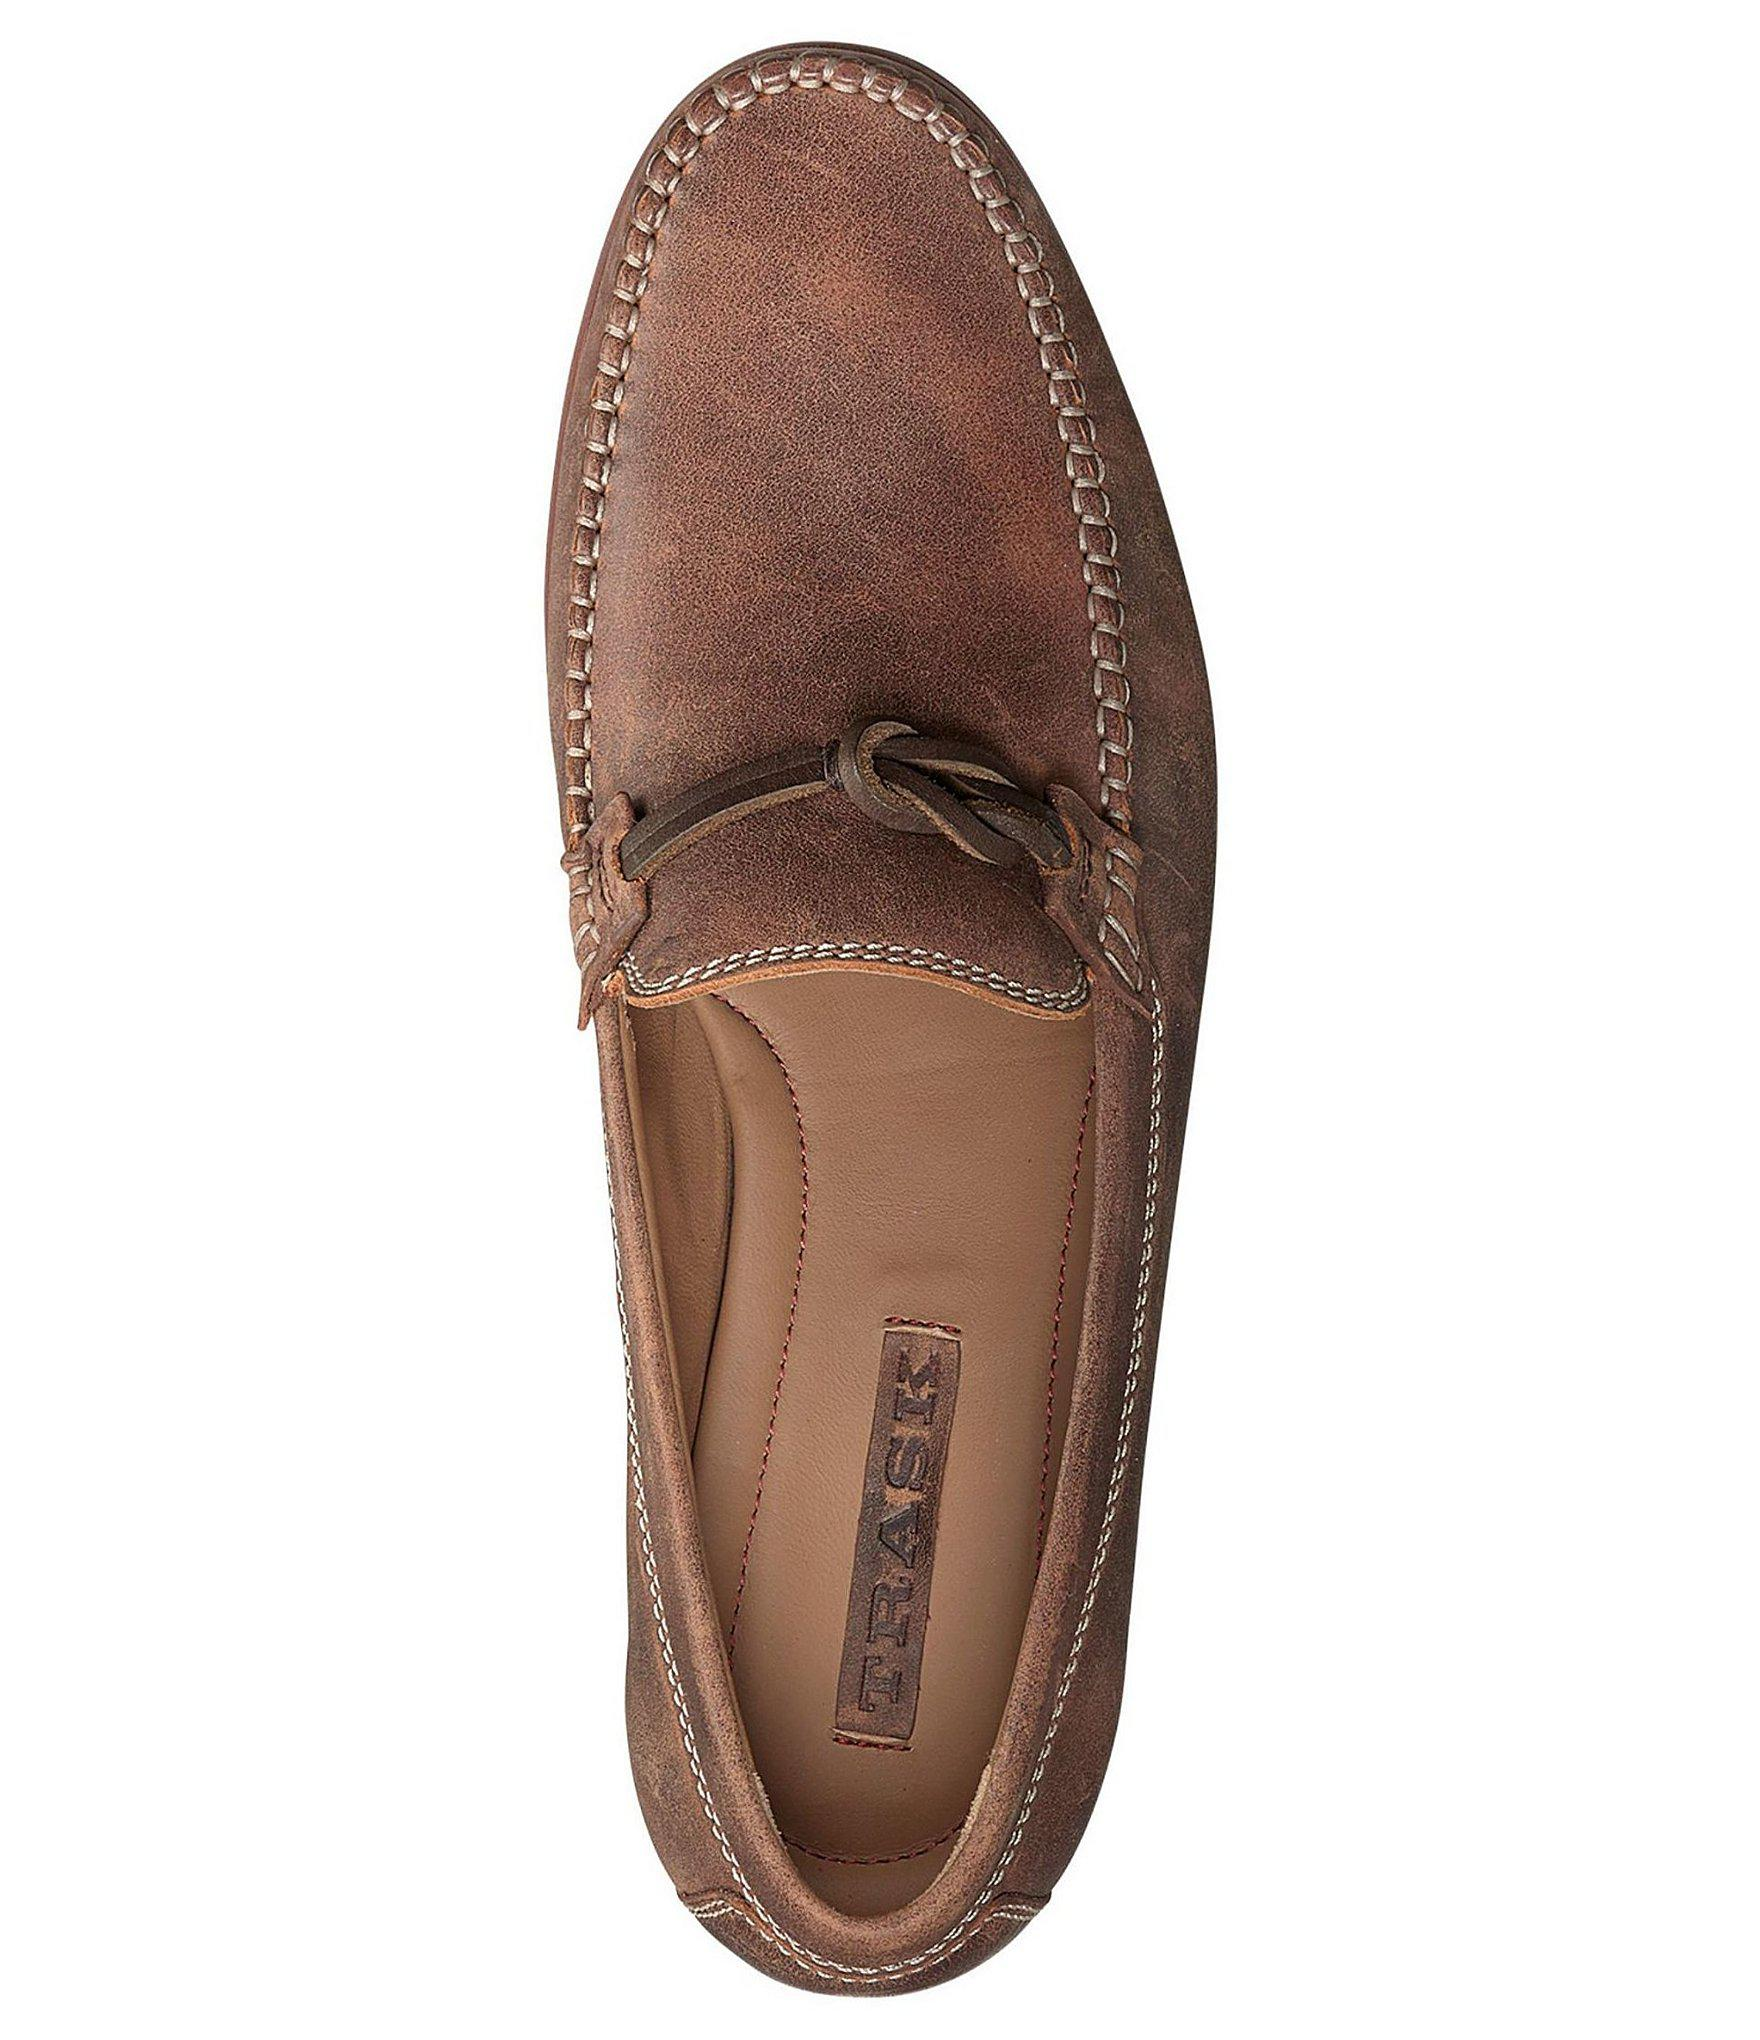 cfd08a39054 Trask - Brown Men S Sawyer American Steer Loafers for Men - Lyst. View  fullscreen